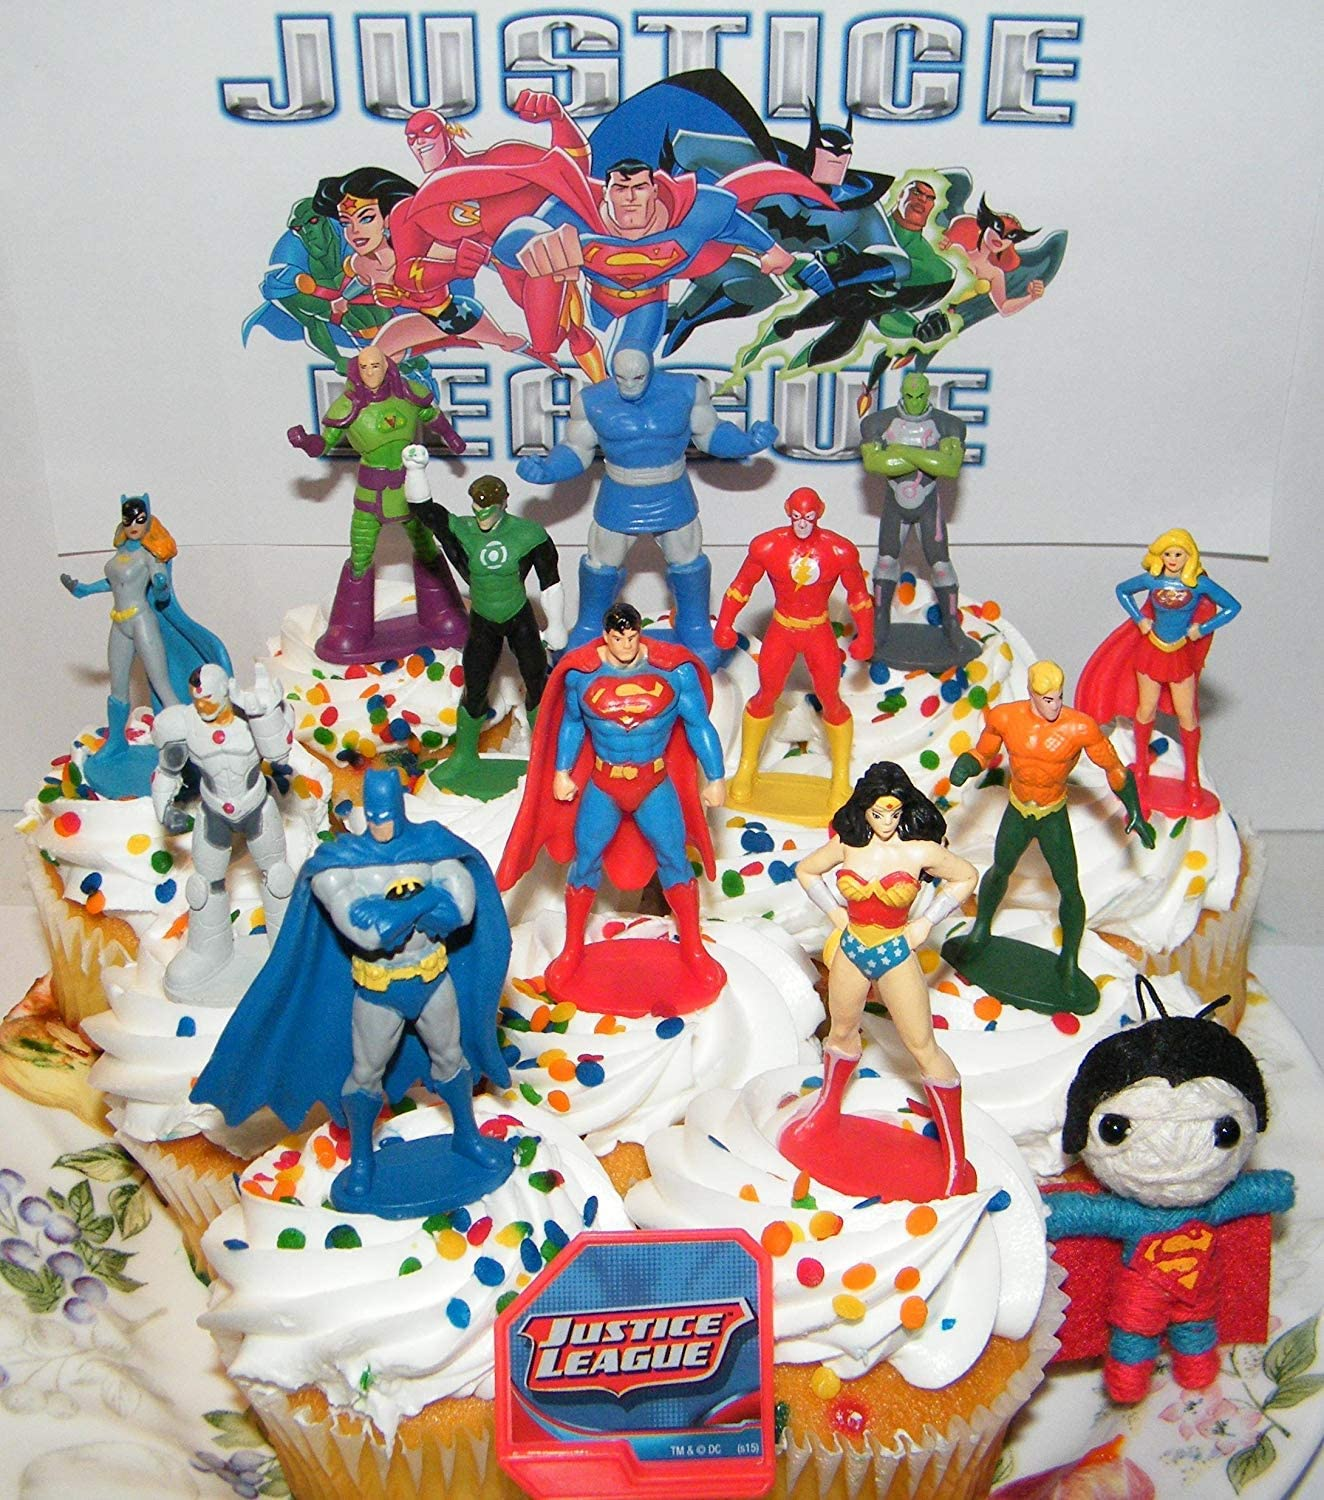 Amazon Com Justice League Deluxe Cake Toppers Cupcake Decorations Set Of 14 With 12 Figures Dc Doll Jl Toyring Featuring Batman Superman Wonder Woman Darkseid Etc Toys Games